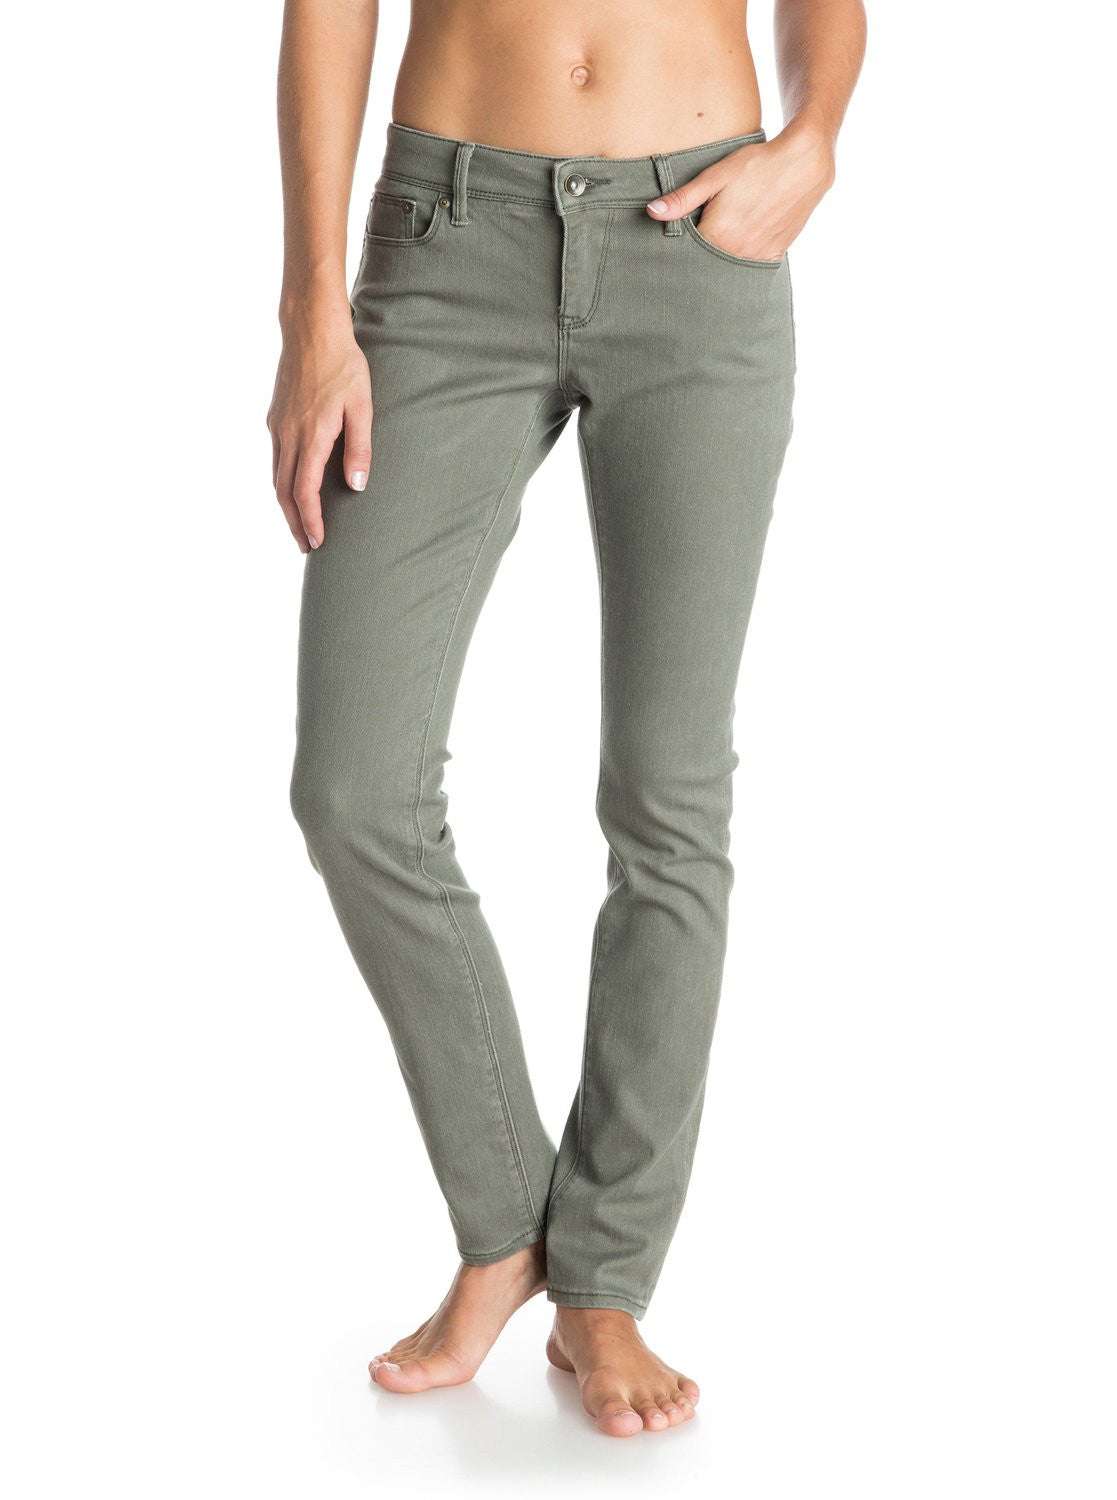 Roxy Ladies Suntrippers Colors Jeans Olive Green